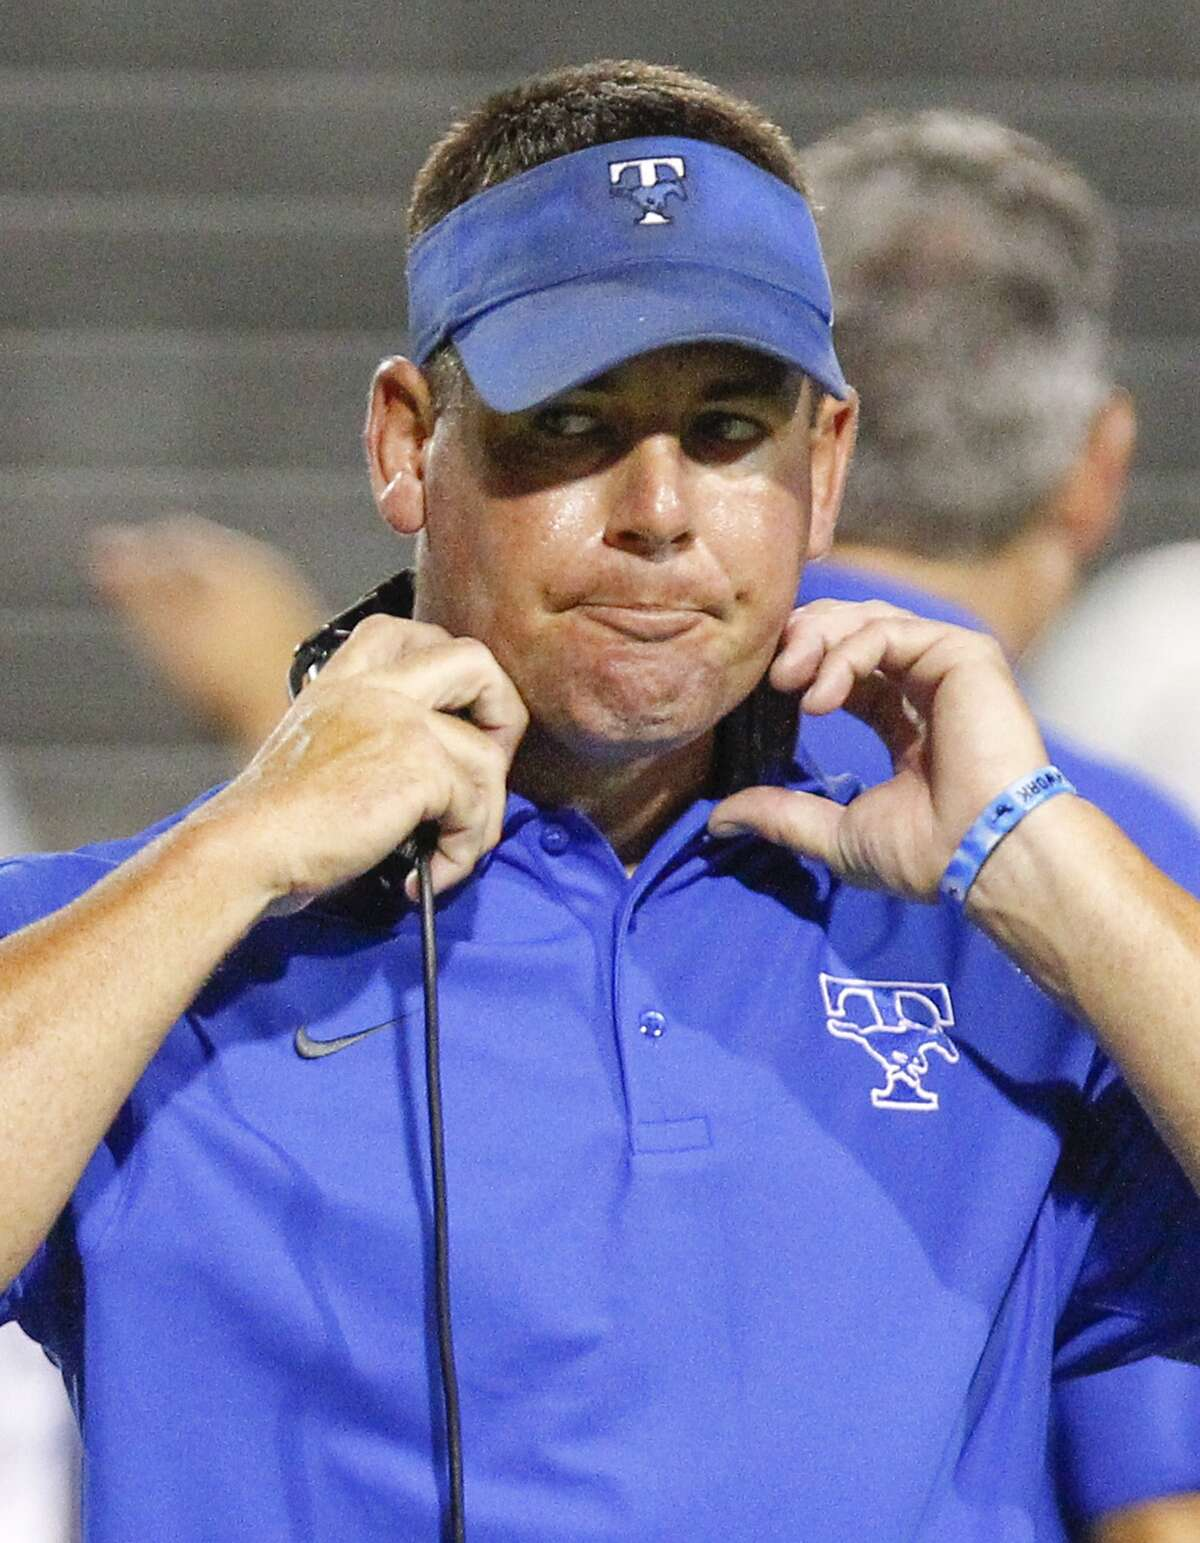 Taylor High School parents and students learned Tuesday that Trey Herrmann, the head football coach and athletic director, would be at least temporarily replaced by assistant coach Joe Sheffy. PHOTOS: Houston's highest paid high school football coaches of 2016 ...